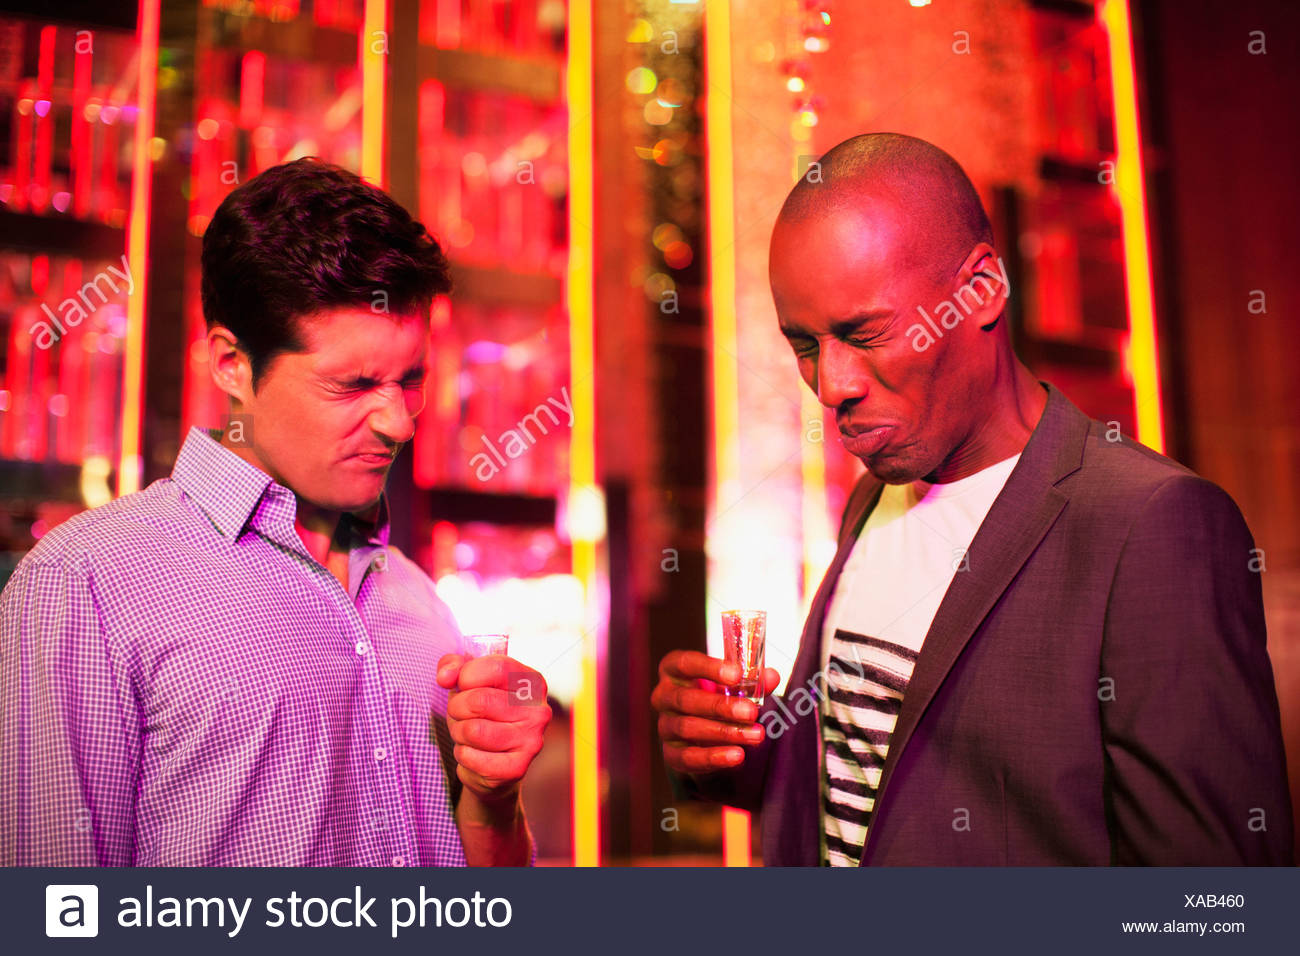 Men with shot glasses making a face in nightclub - Stock Image